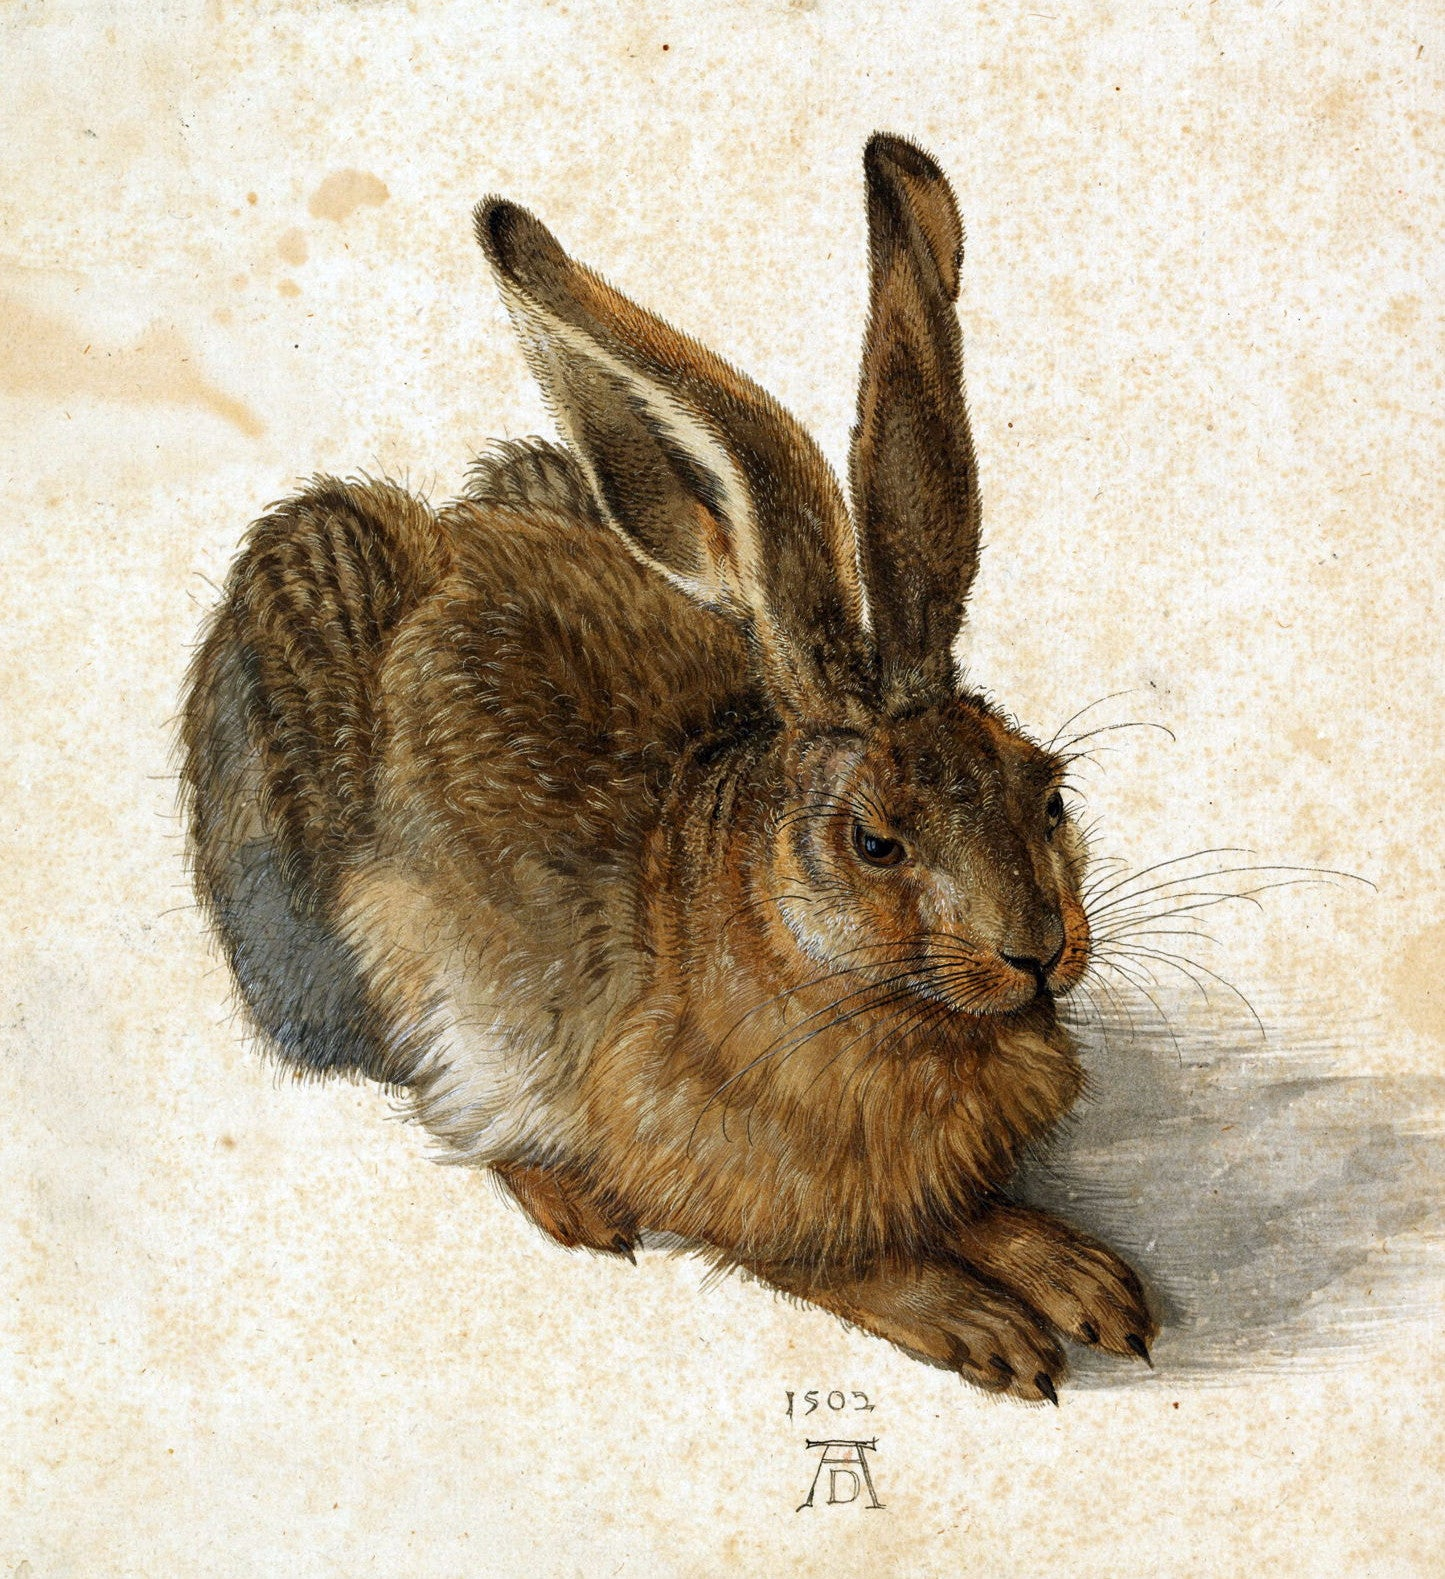 Albrecht Dürer | Buy Posters, Frames, Canvas, Digital Art & Large Size Prints